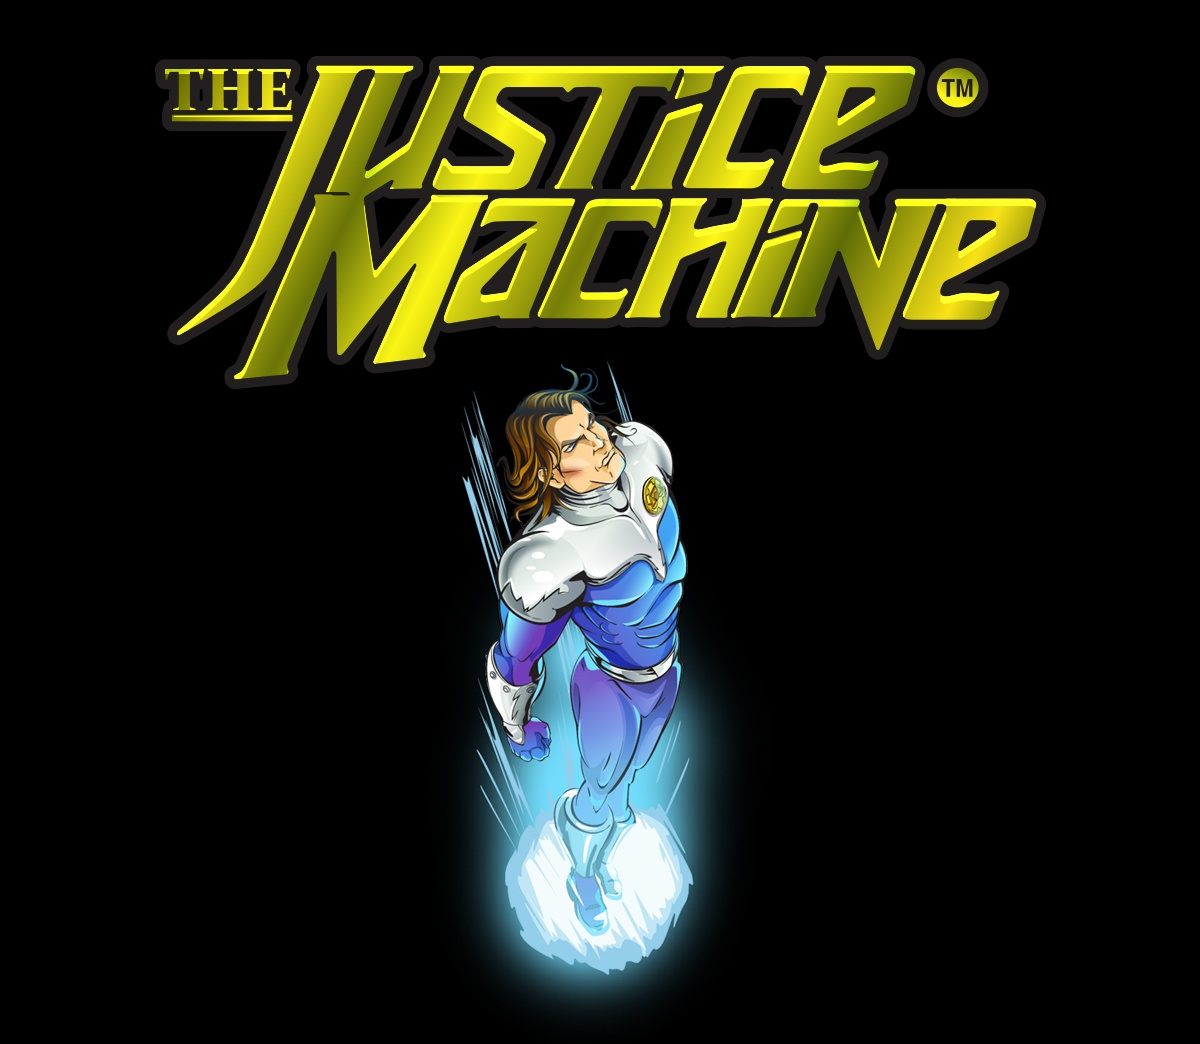 Justice machine_slide_17